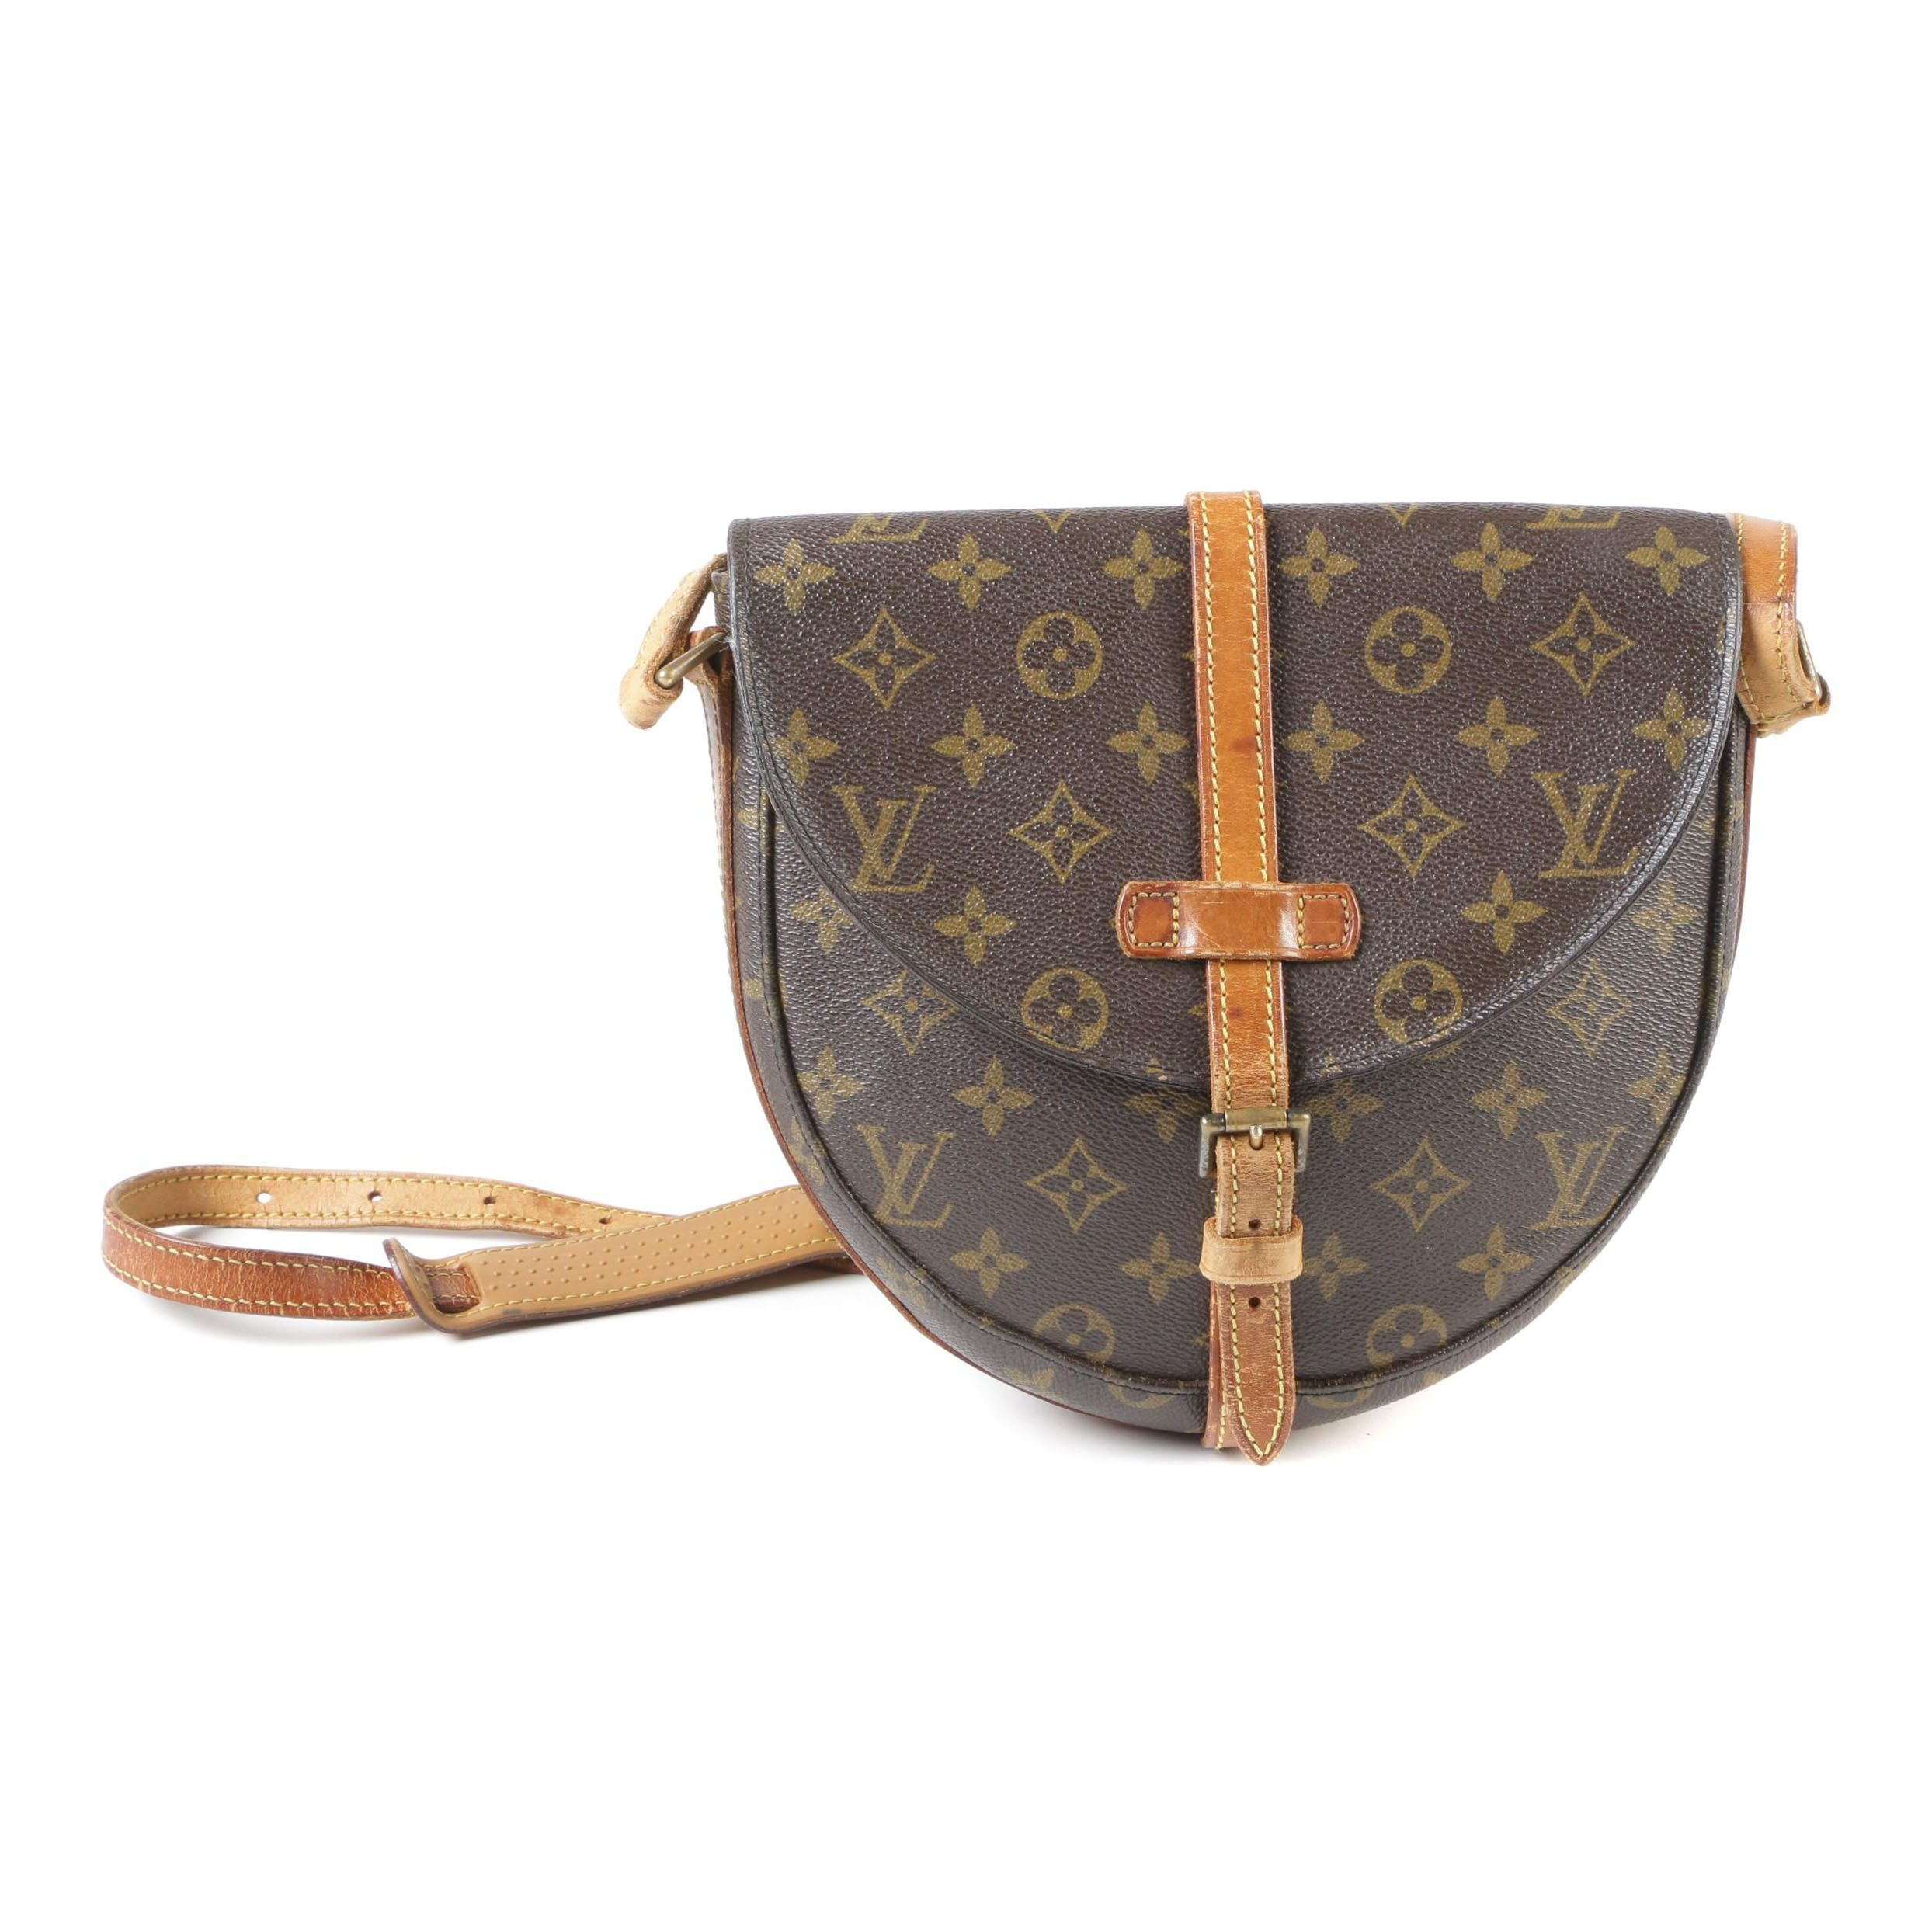 Louis Vuitton Paris Monogram Canvas Chantilly PM Bag